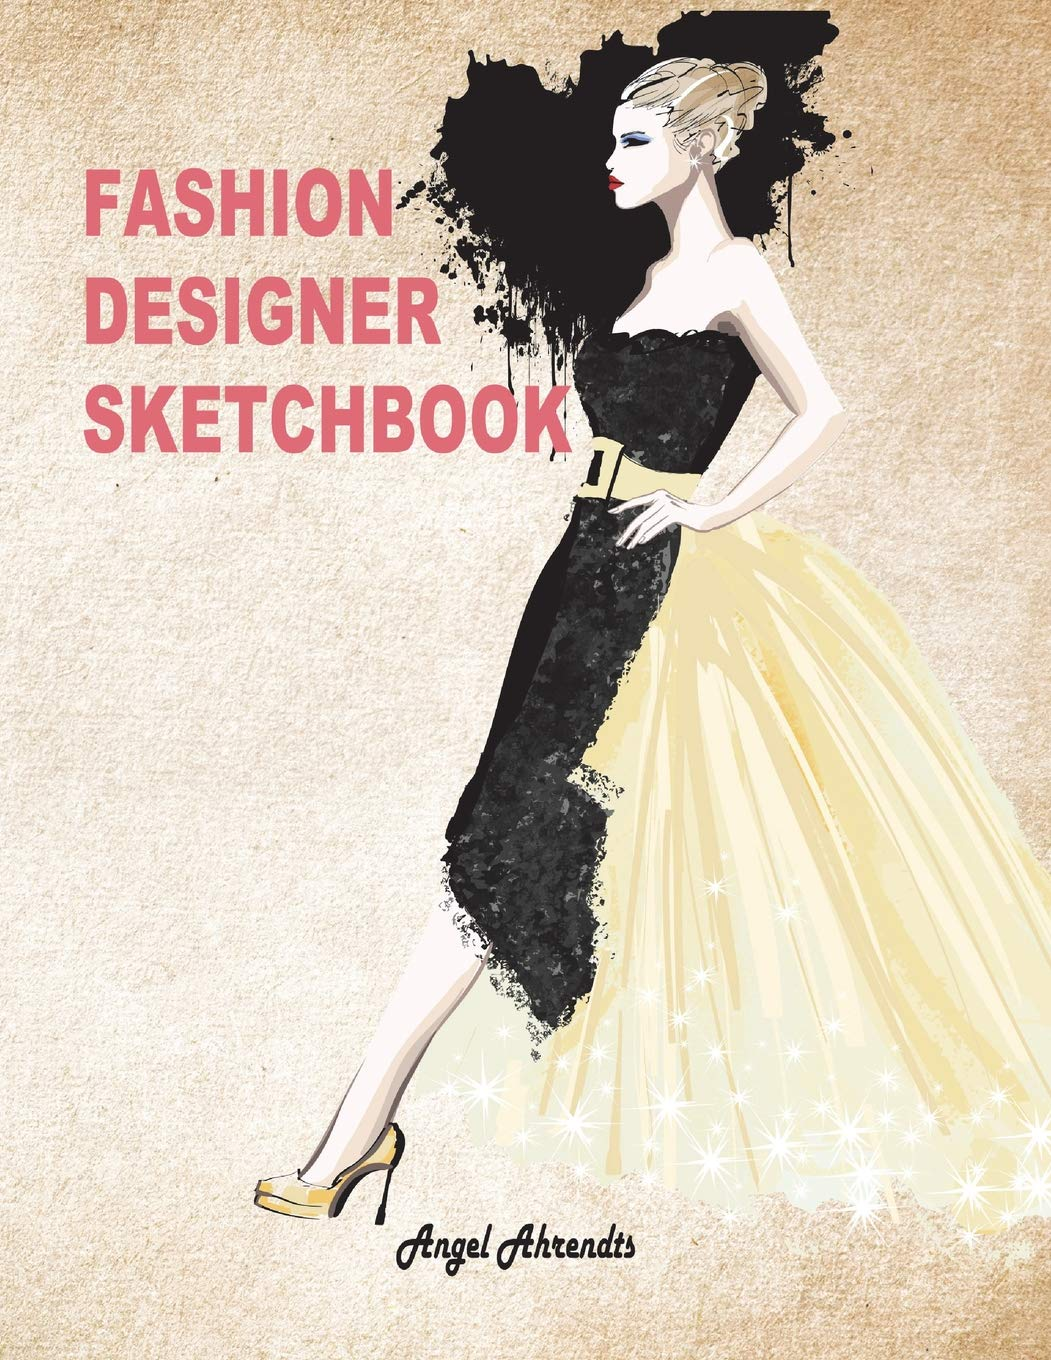 Fashion Designer Sketchbook Women Figure Sketch Different Posed Template Will Easily Create Your Fashion Styles Fashion Sketch Ahrendts Angel 9781983182341 Amazon Com Books